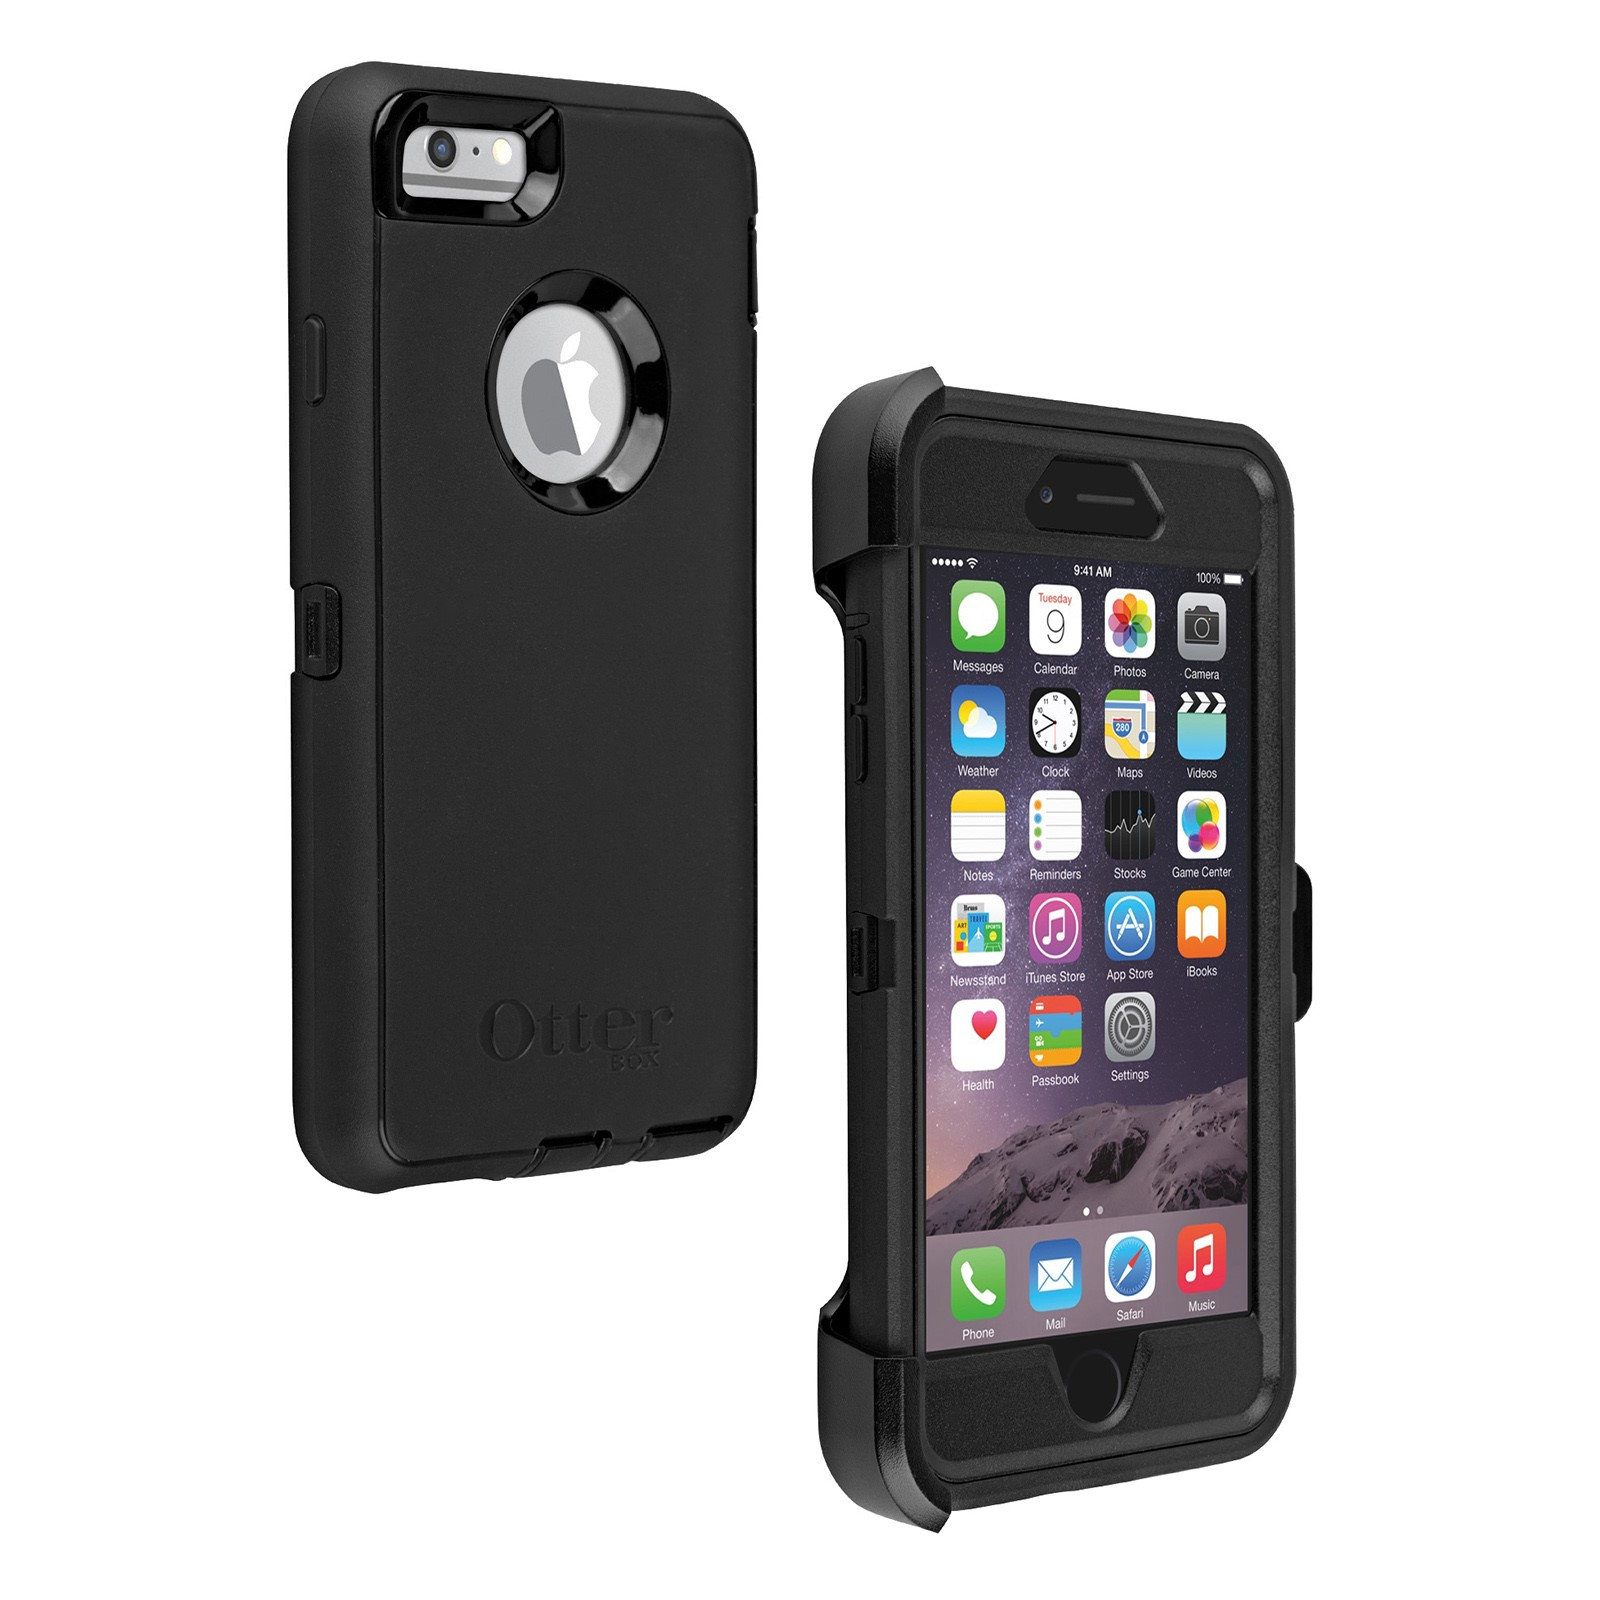 OtterBox's thinnest, most protective case. Wherever your next adventure leads, Pursuit Series is tough enough to follow. Built with PursuiTech — an advanced series of protective features — Pursuit Series is designed to weather the elements and fend off dust, dirt, mud and snow. Rugged and ready, this is the case for all your pursuits.